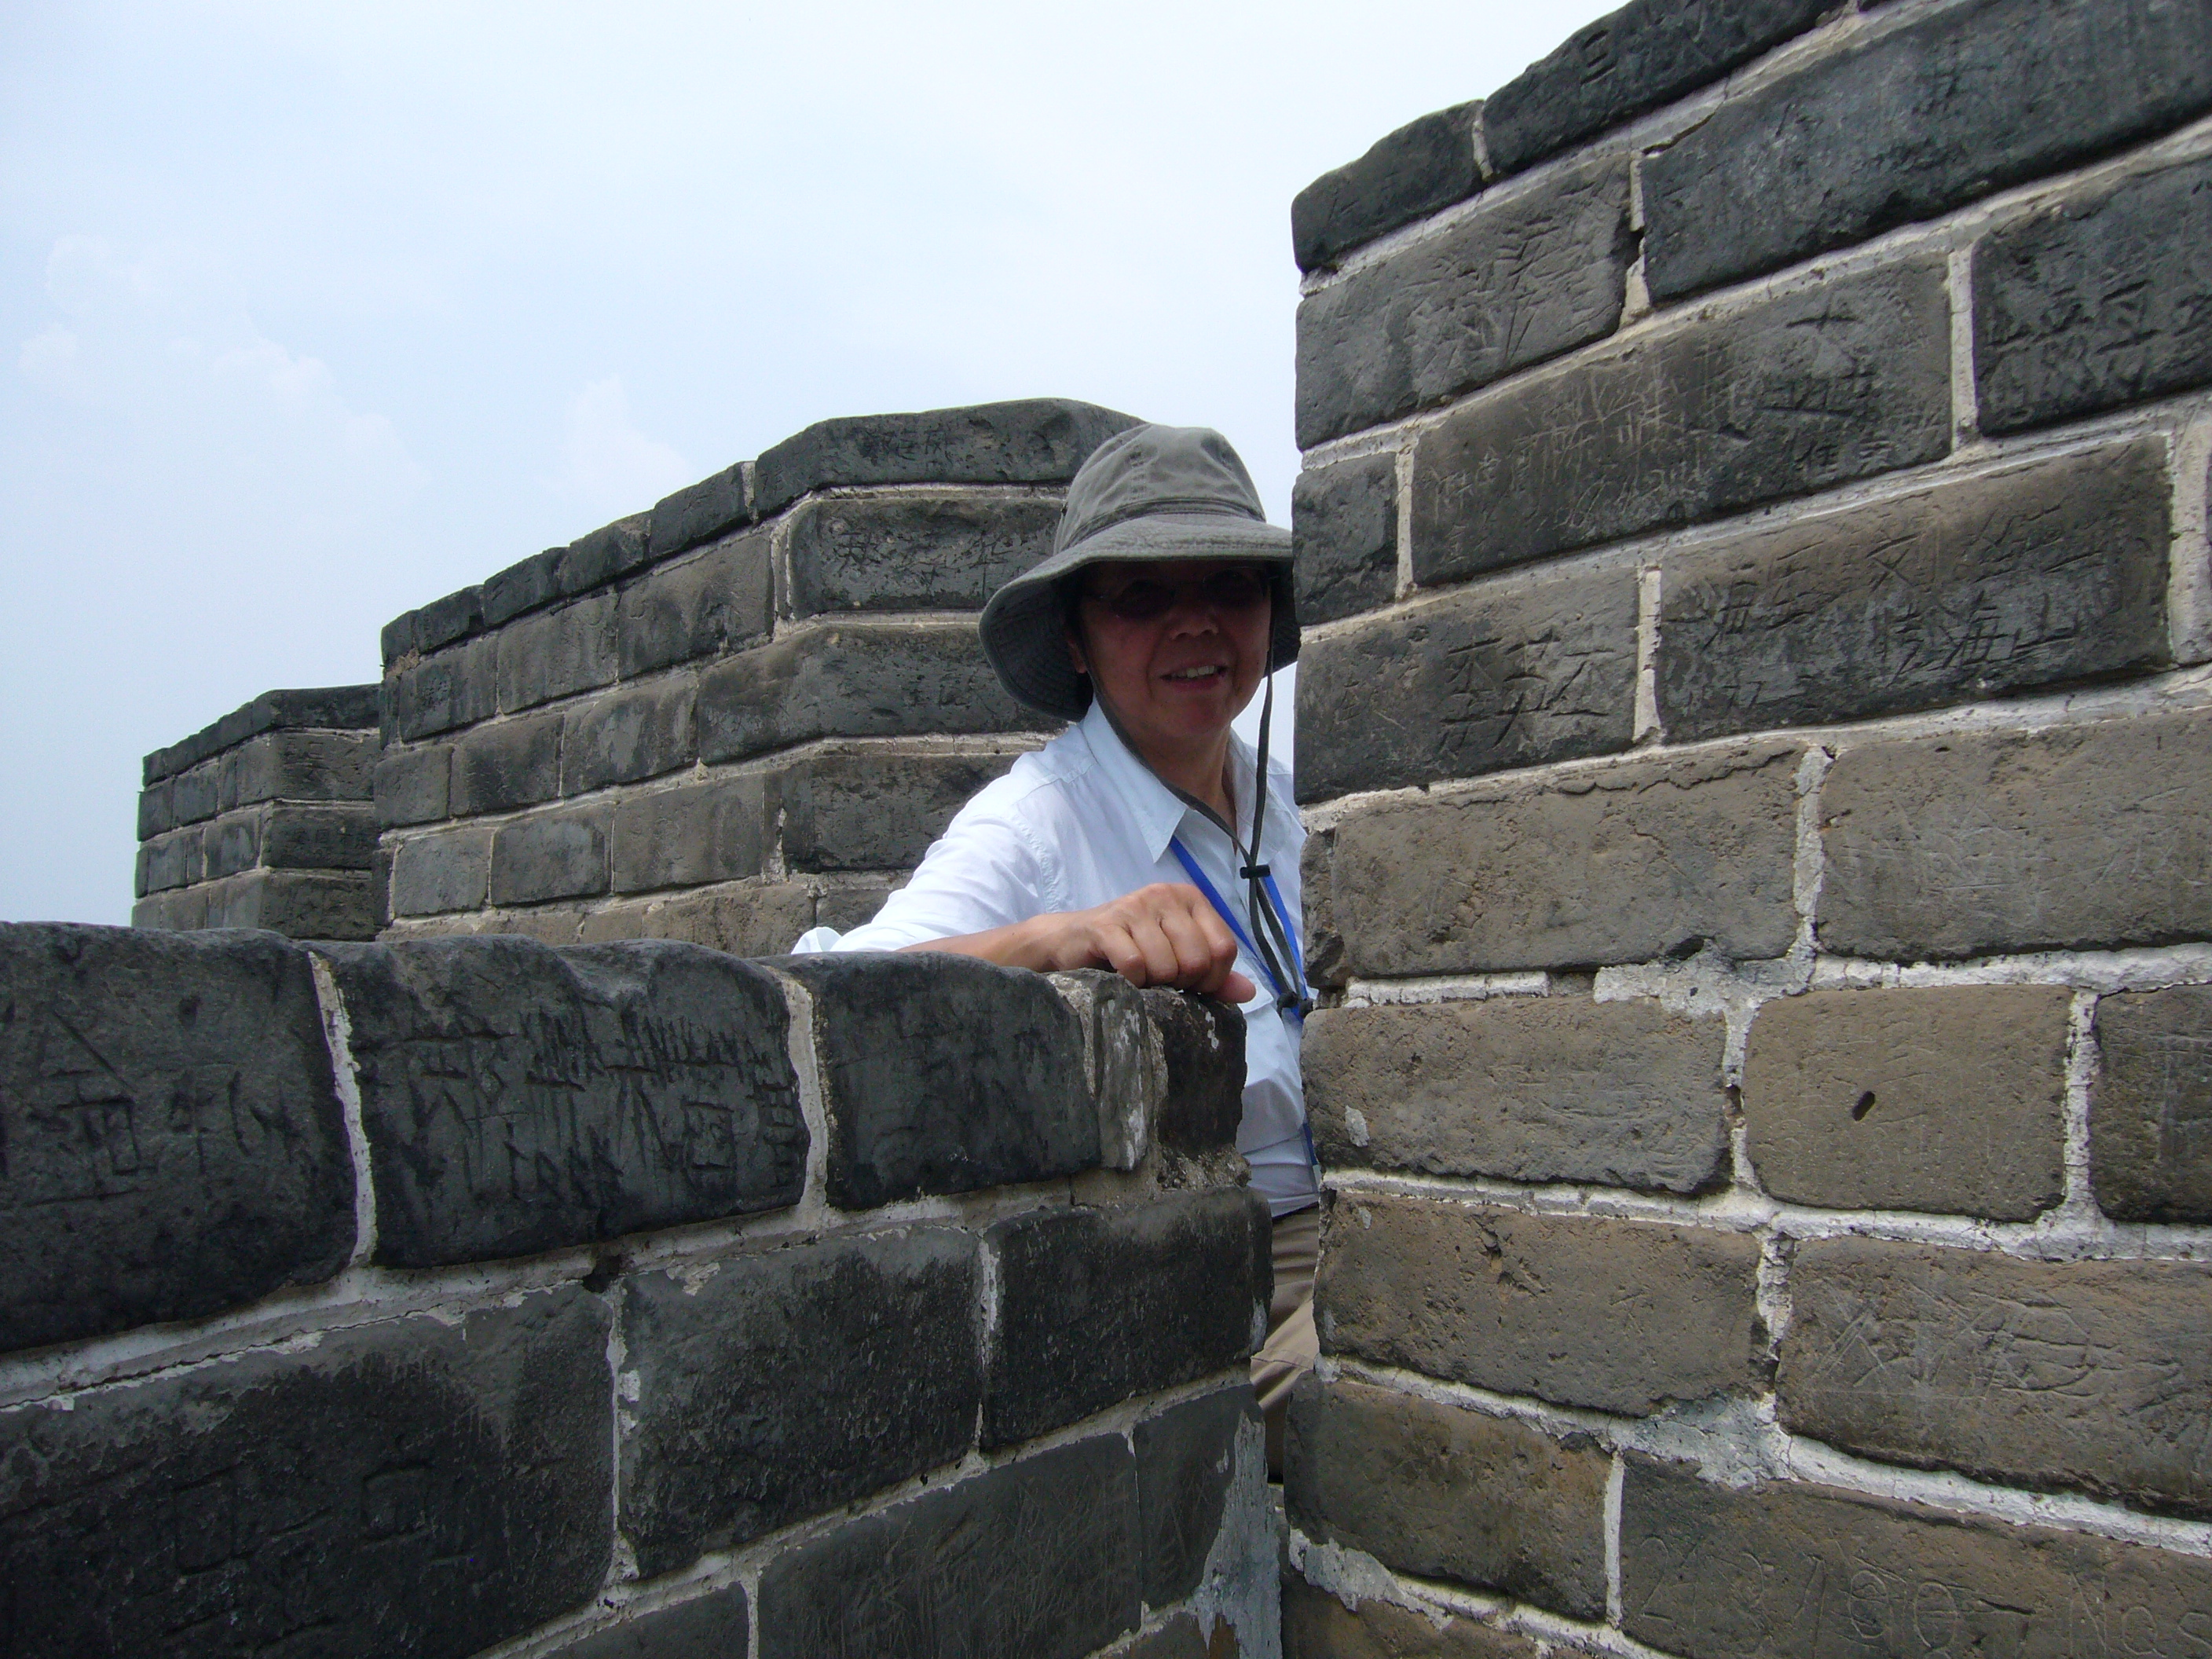 Betty at the Great Wall of China